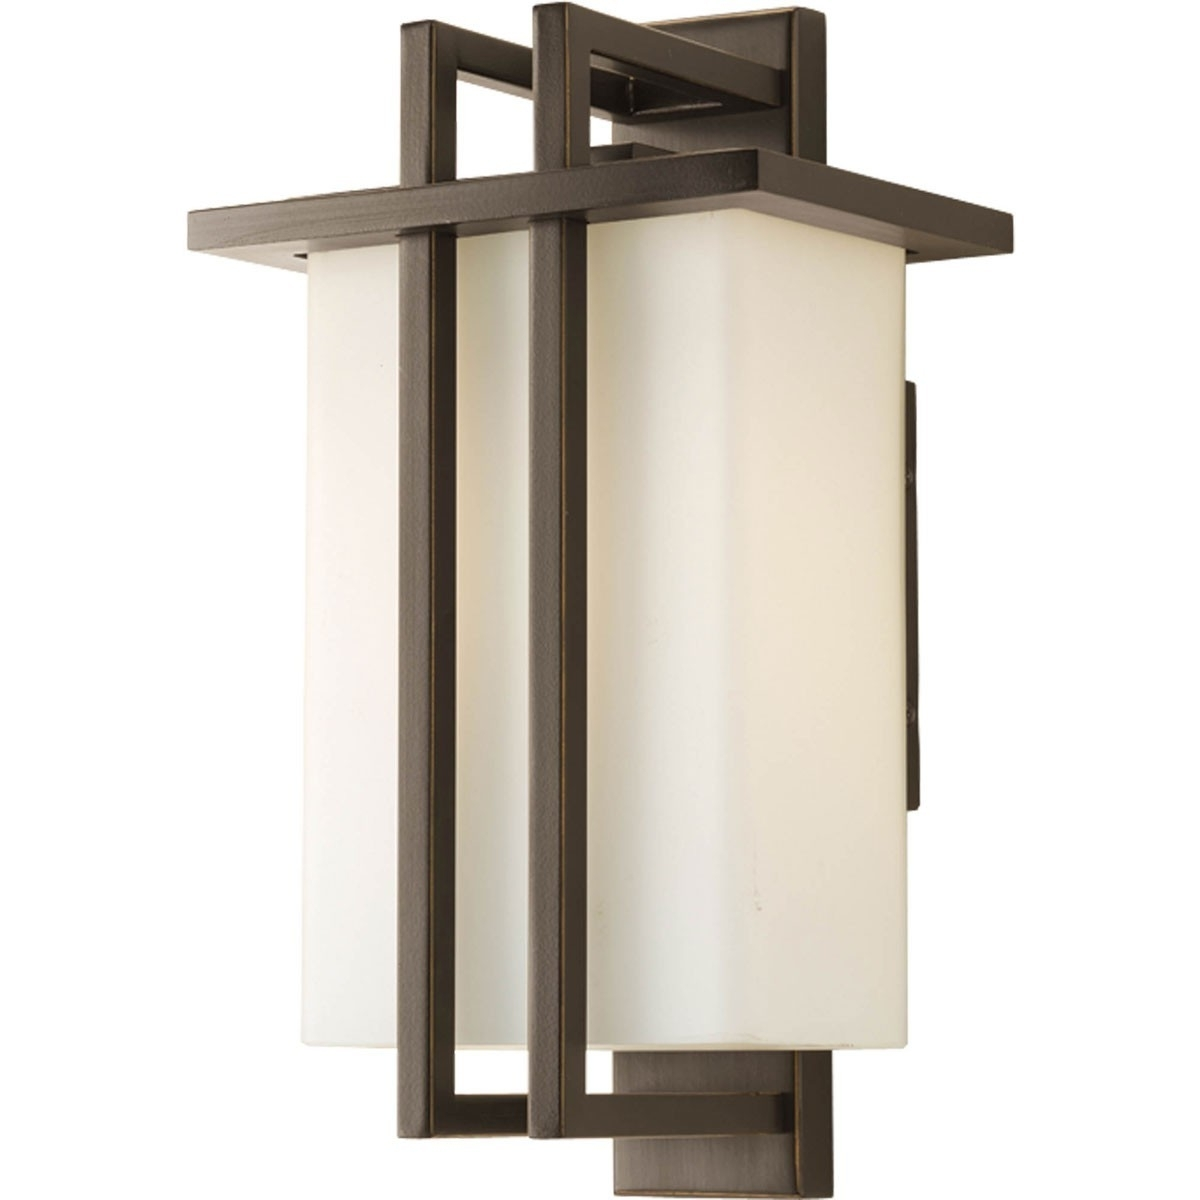 Outdoor Hanging Wall Lanterns Throughout Well Known Outdoor Small Hanging Lantern Light Fixture – Progress Lighting (View 13 of 20)